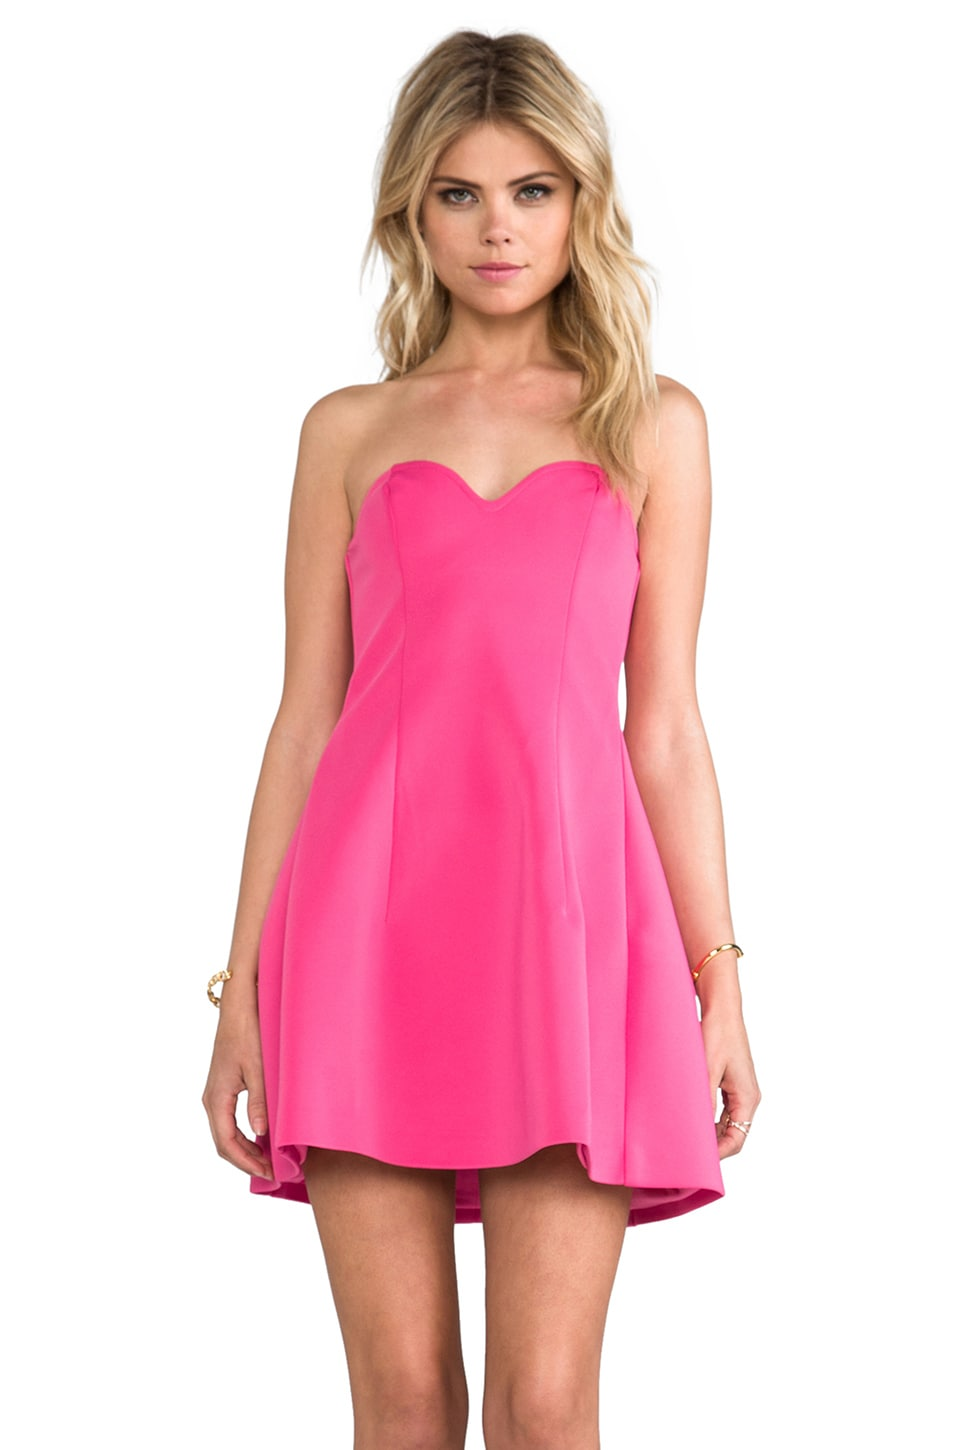 BLAQUE LABEL Strapless Dress in Baby Pink